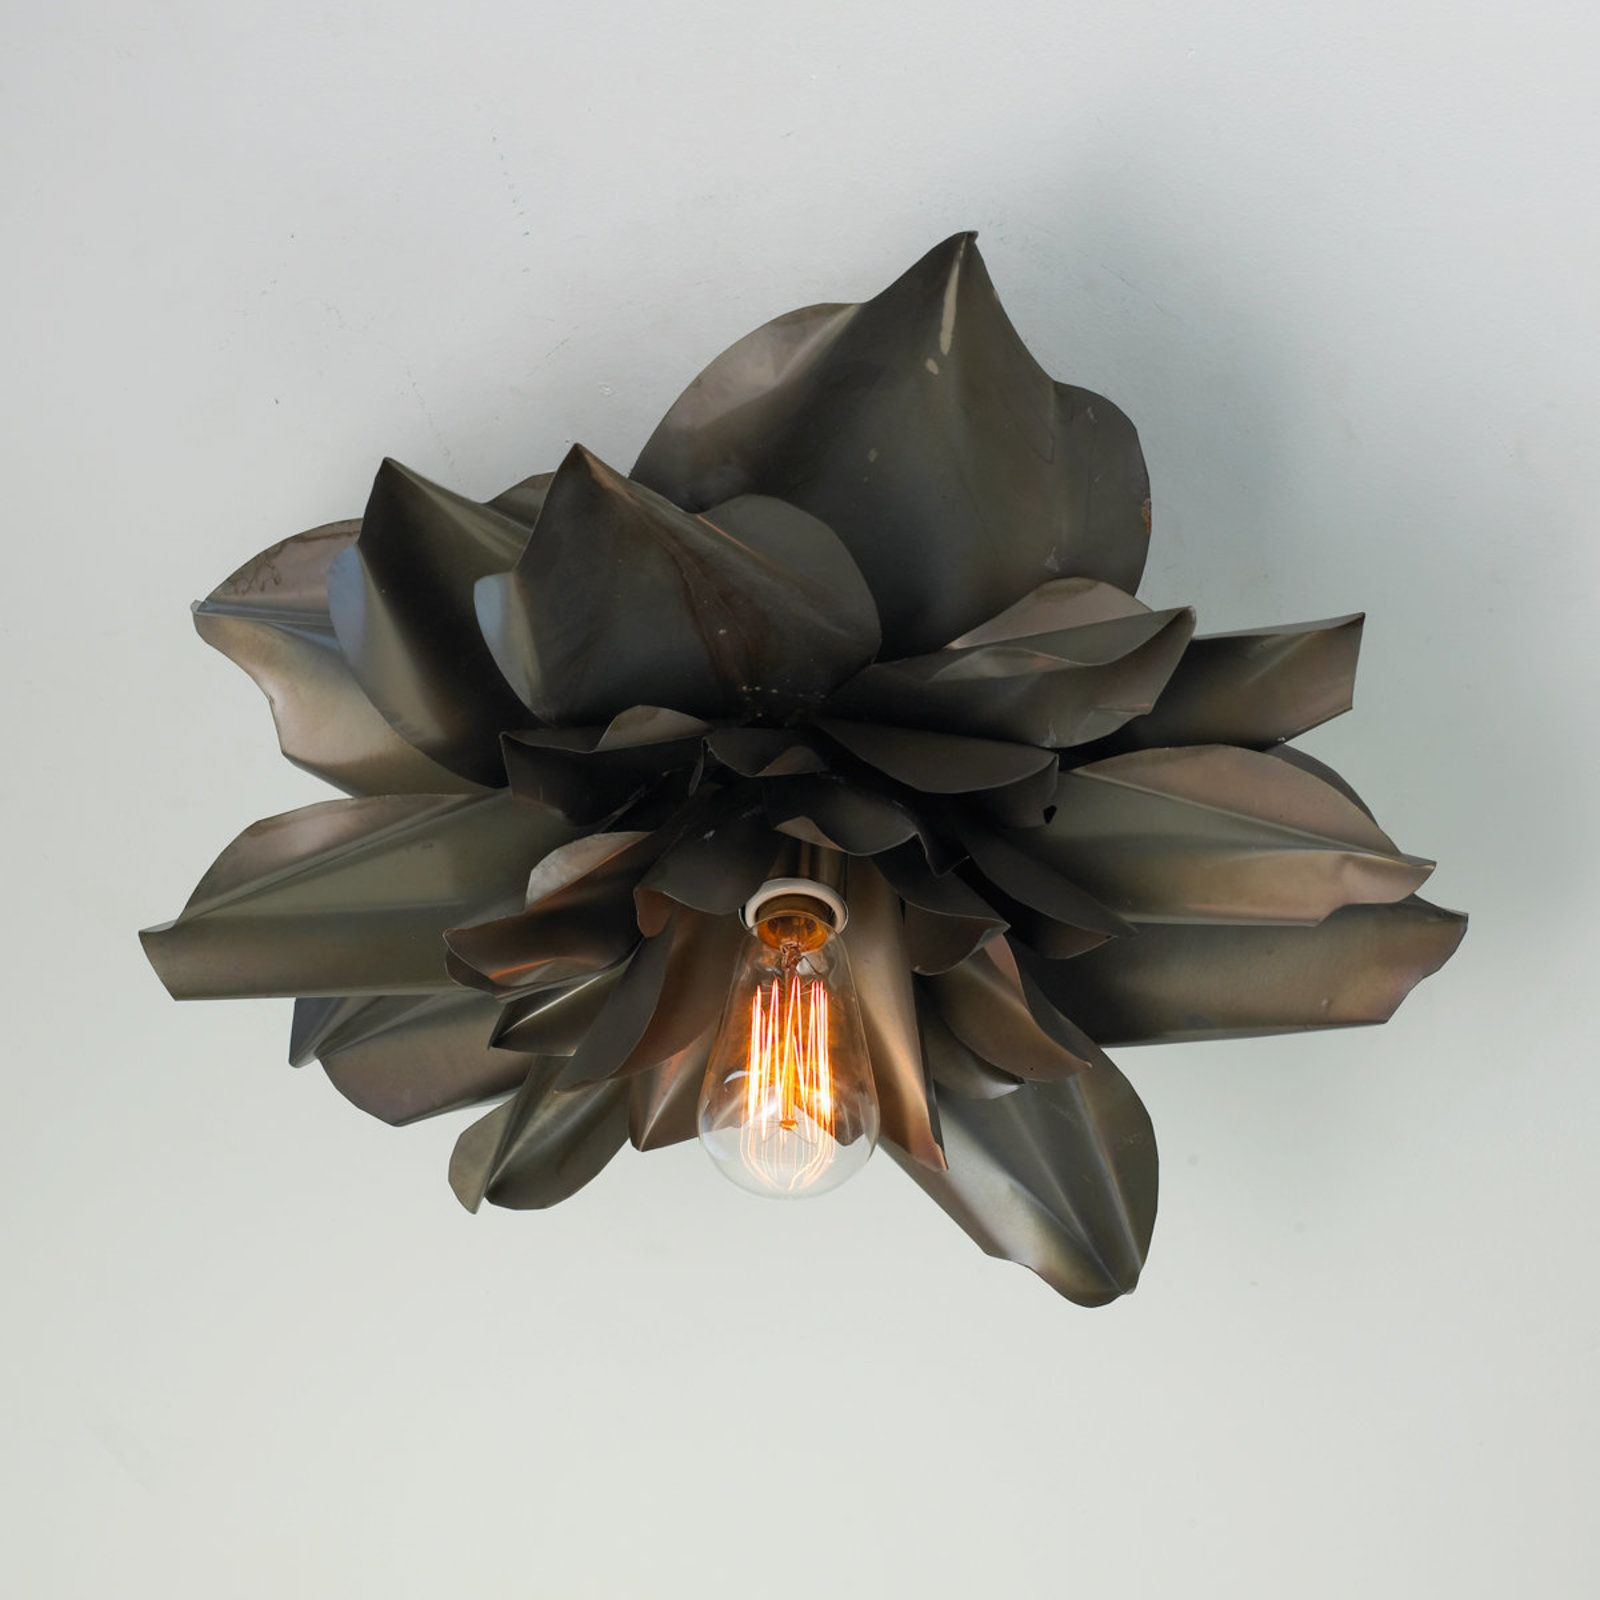 Vintage Magnolia Blossom Semi Flush Ceiling Light - Medium | Häuschen